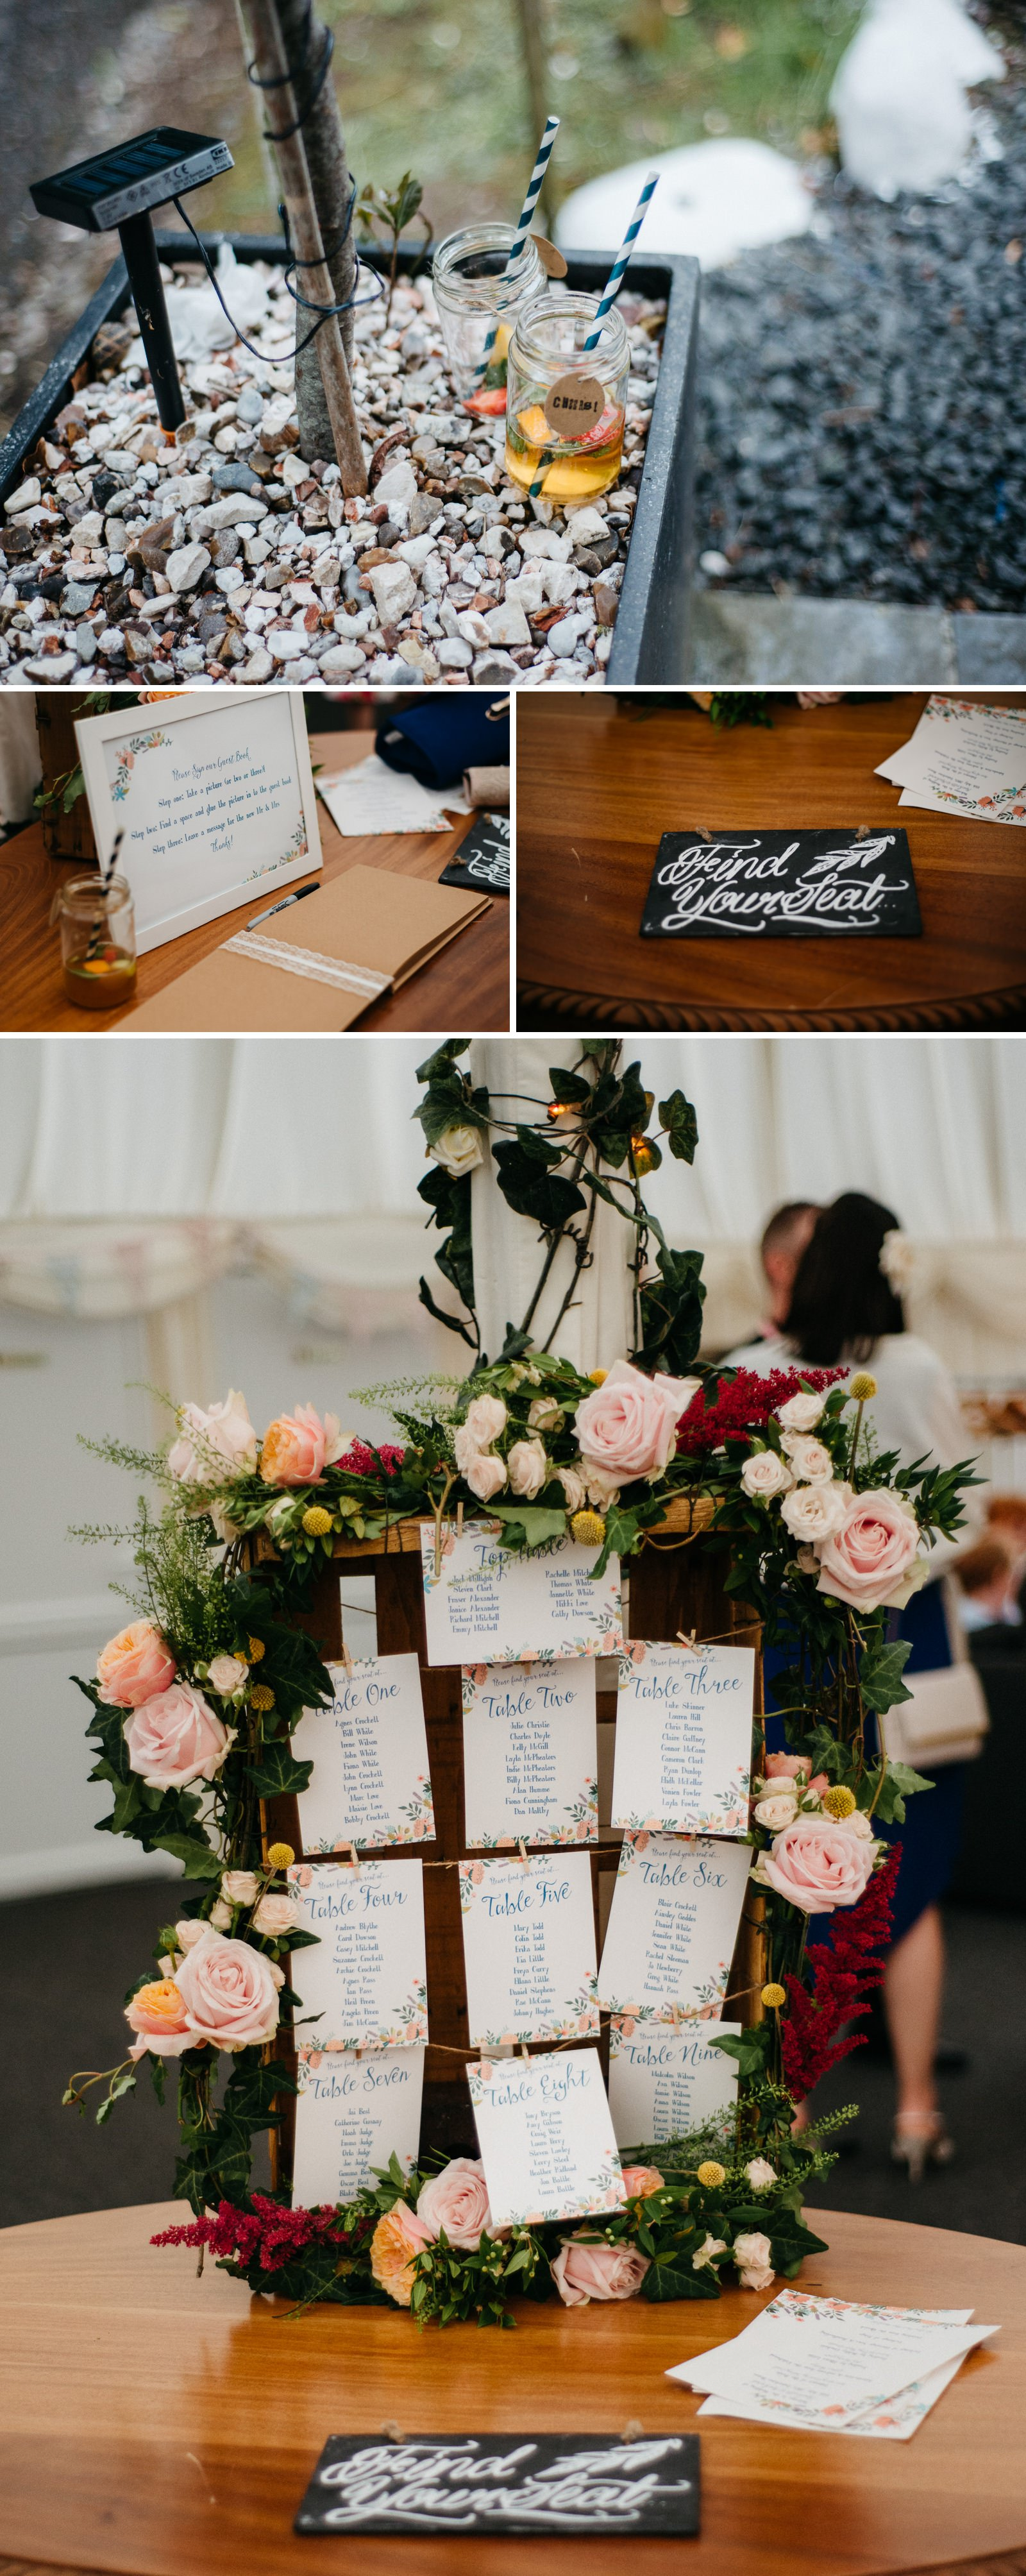 Rich wedding details including floral framed seating plan at Enterkine House